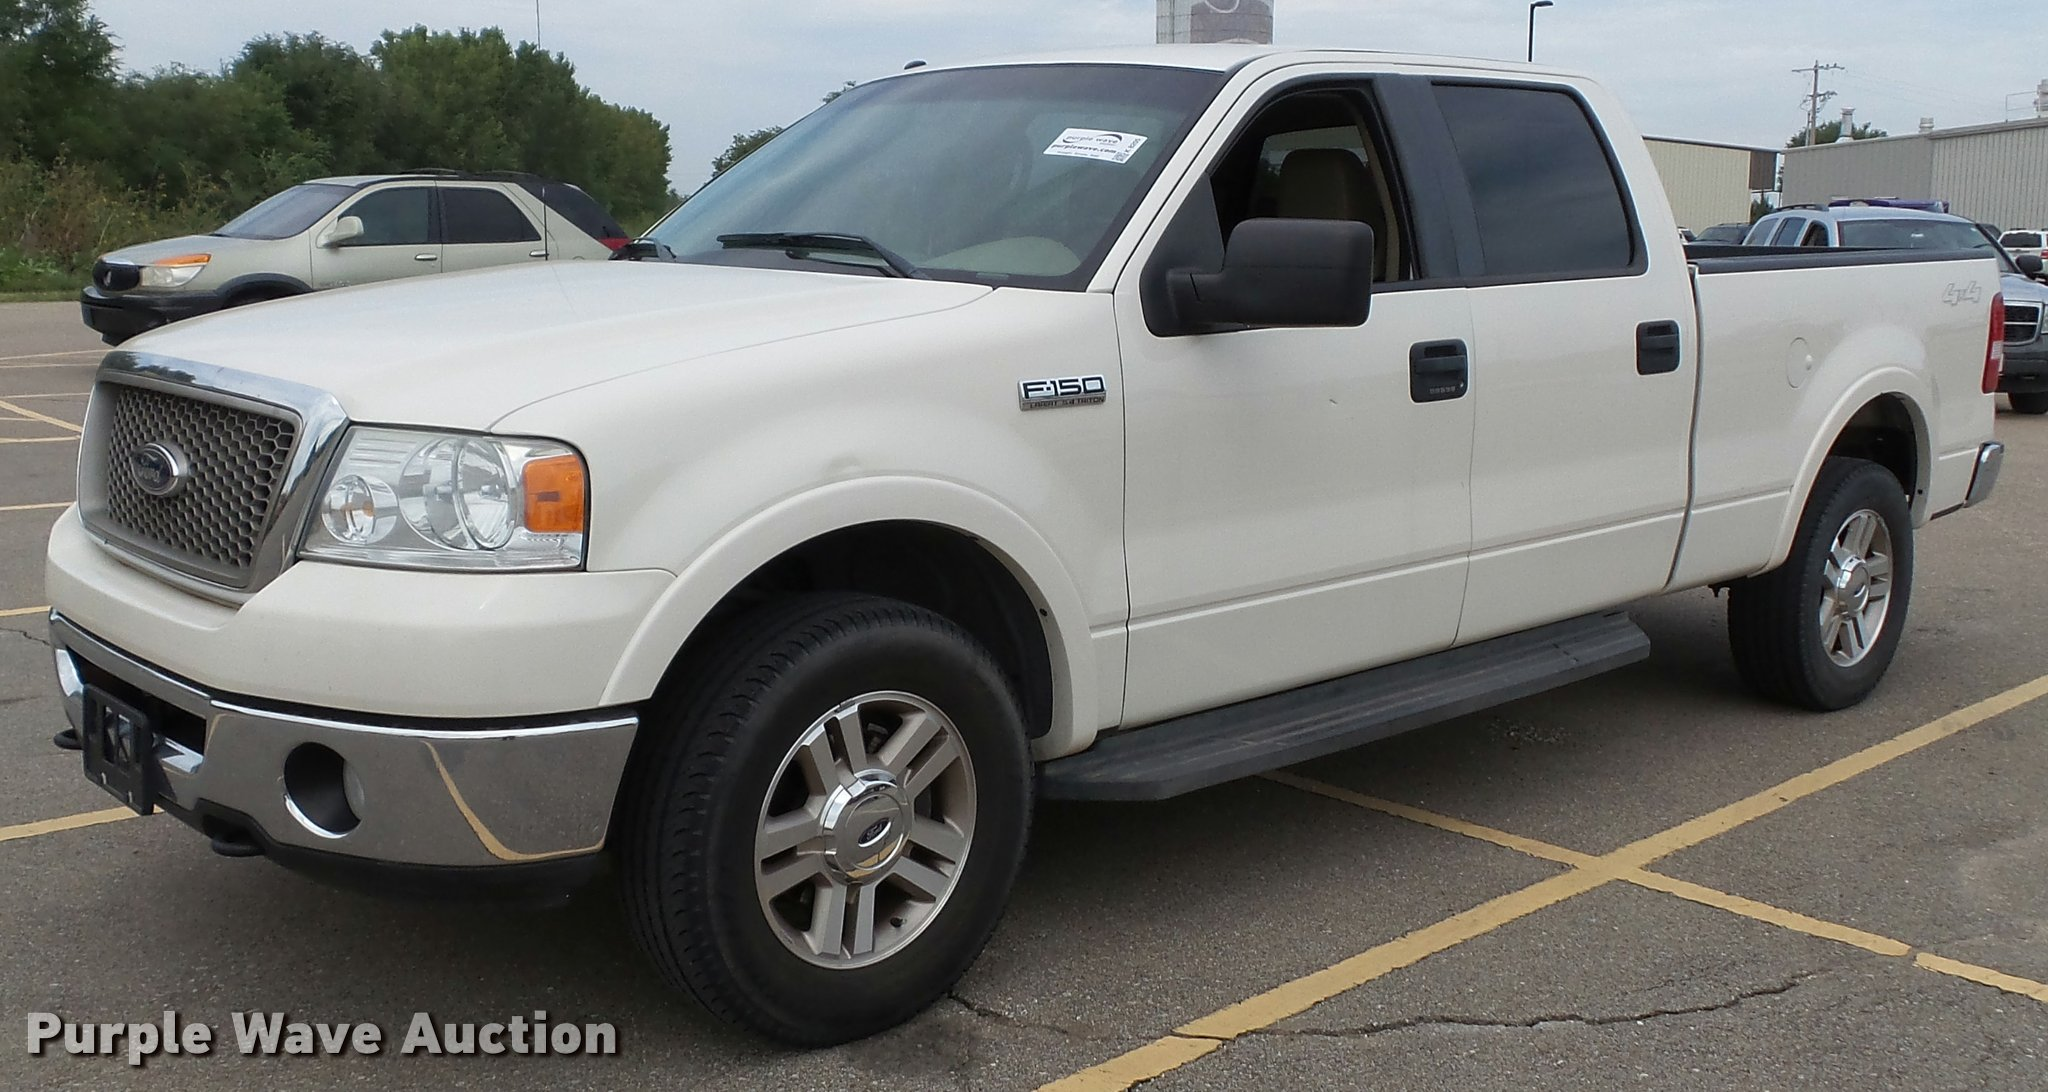 K8205 image for item k8205 2007 ford f150 lariat